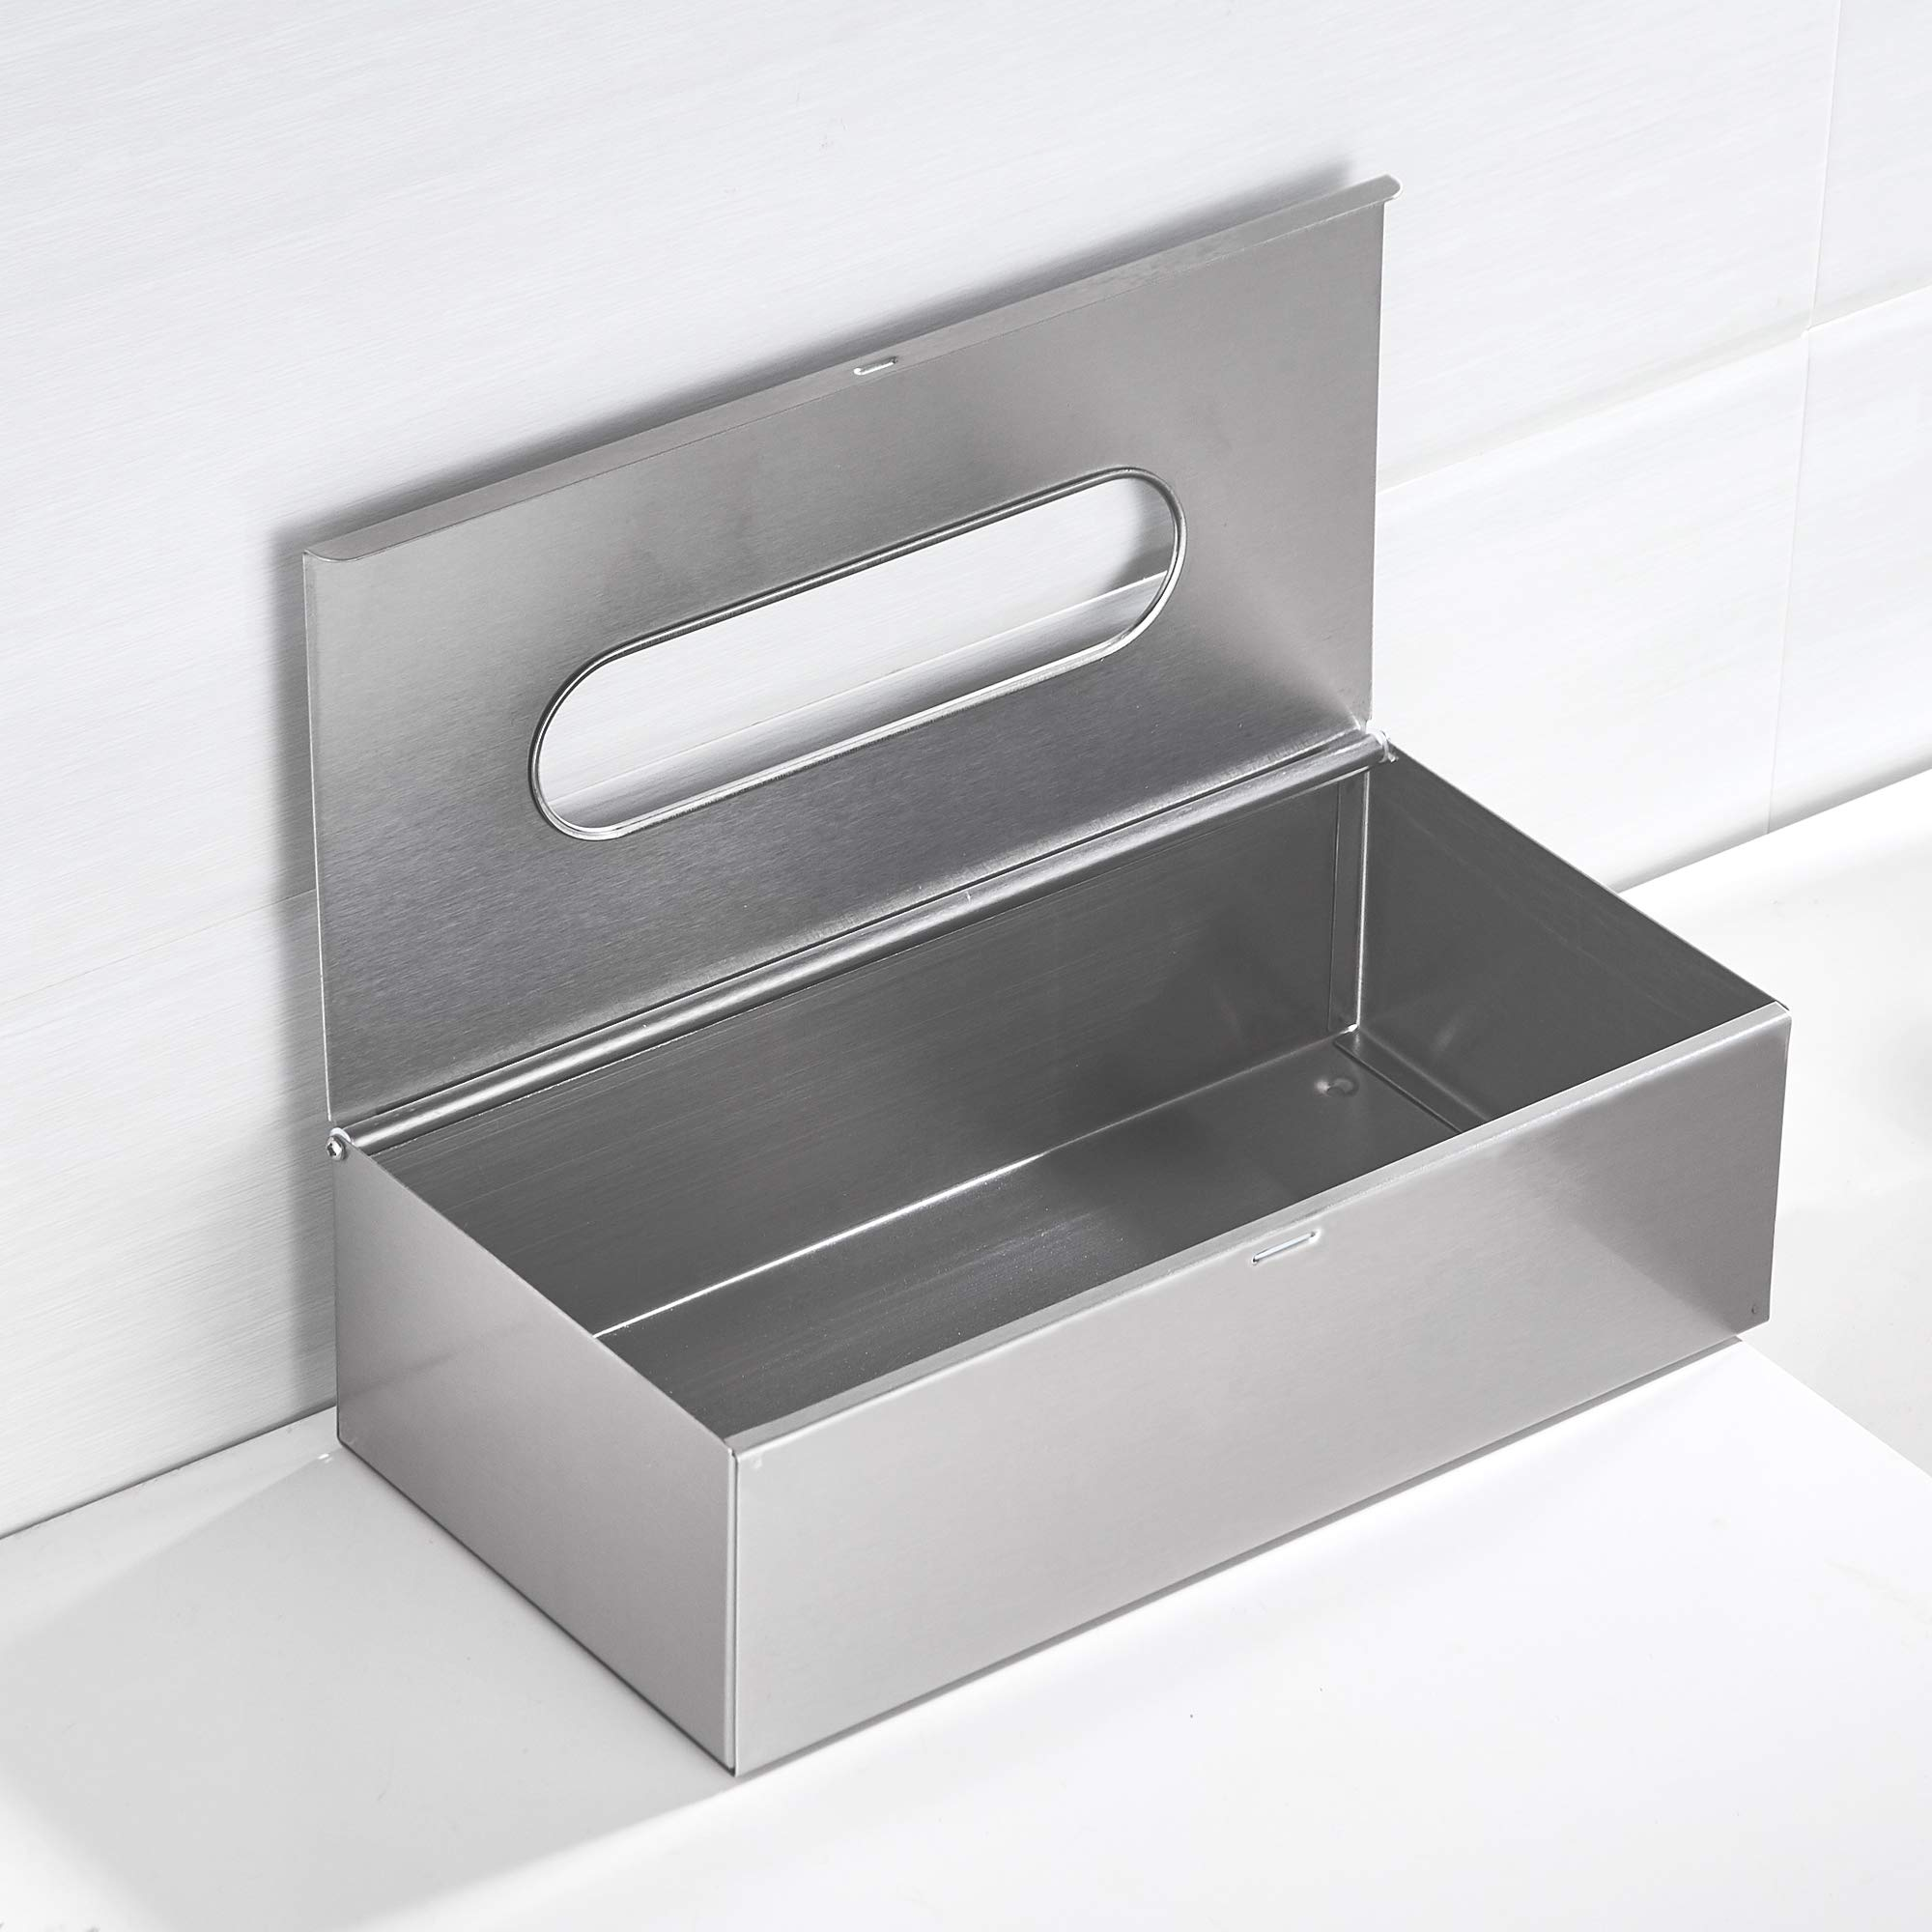 JiangPu Rectangle Tissue Box Cover Holder Use for Bathroom Brushed Nickel Tissue Holder Use for Dining Hall or Wall Mounted Use for Toilet Paper Holder Stand by JiangPu